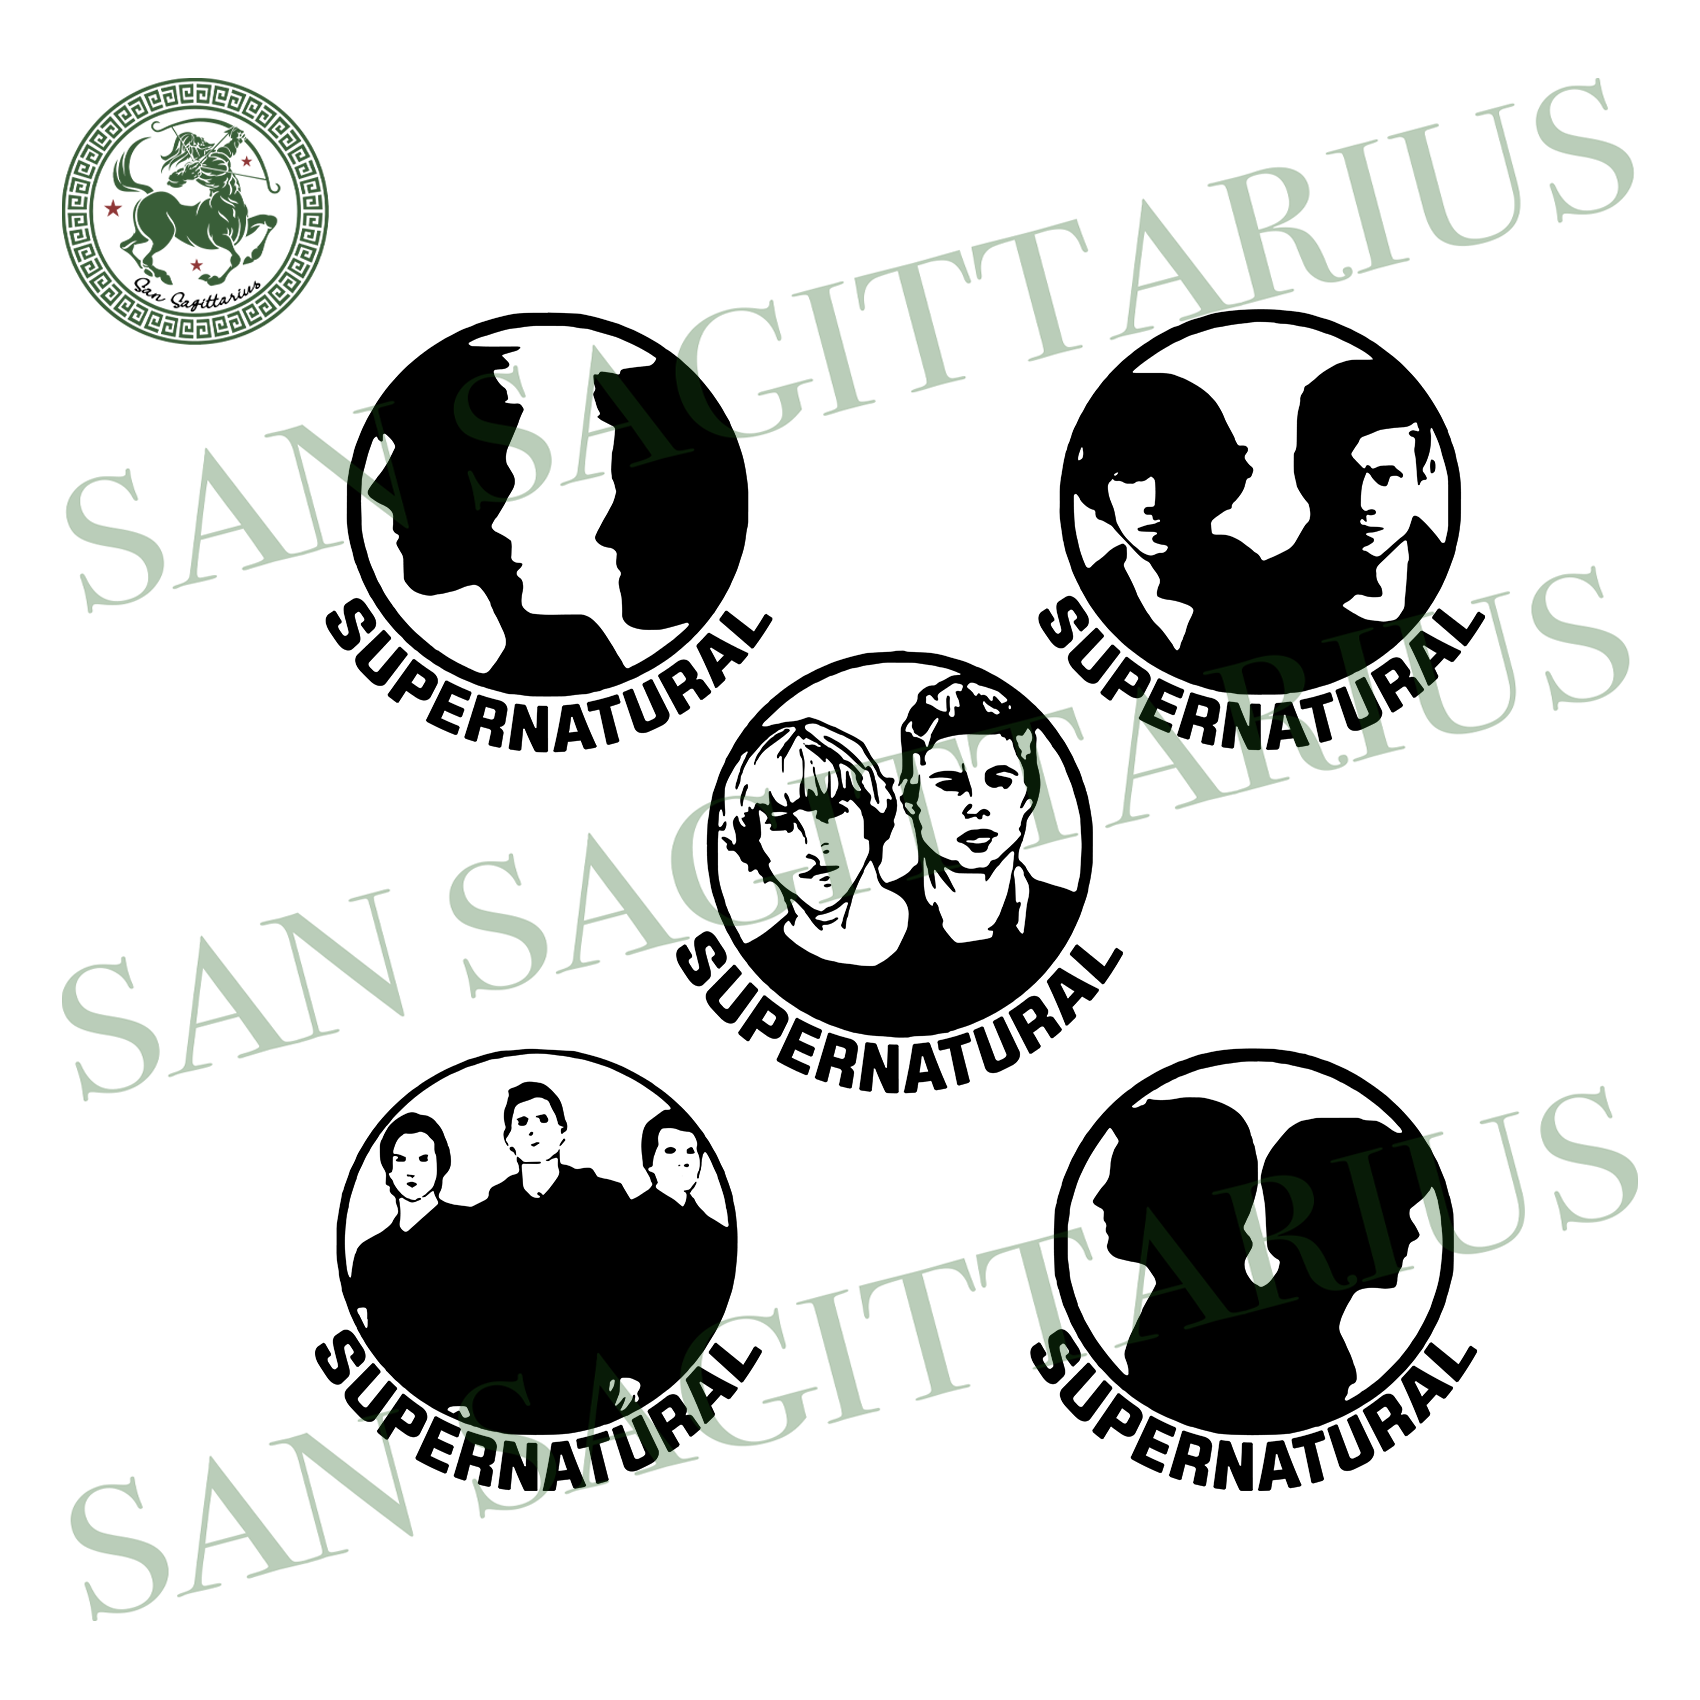 Supernatural bundles svg,svg,tv shows svg,Dean winchester stencil,Supernatural svg,sv bundles,svg cricut, silhouette svg files, cricut svg, silhouette svg, svg designs, vinyl svg